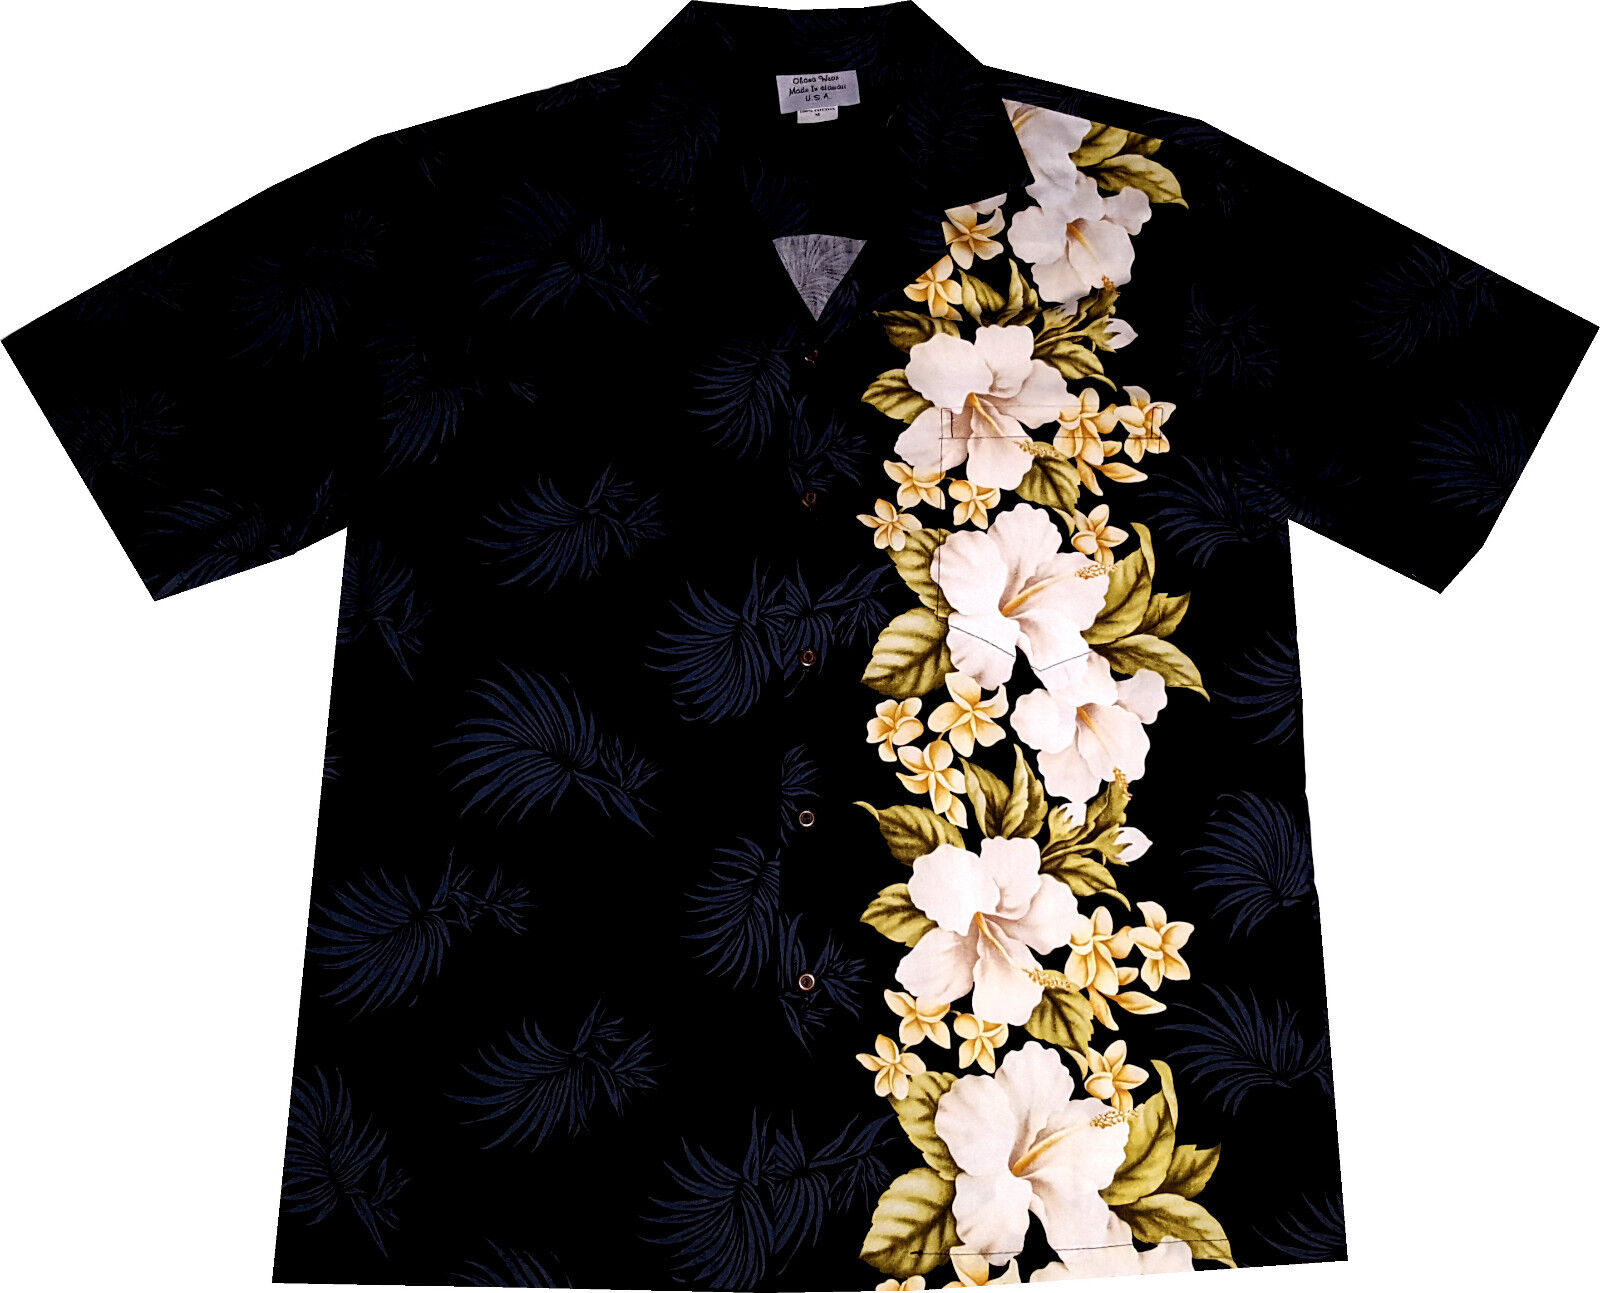 Hawaii Hemd Made in Hawaii Größe S-2XL 100% Baumwolle Hawaiihemd Blüten black